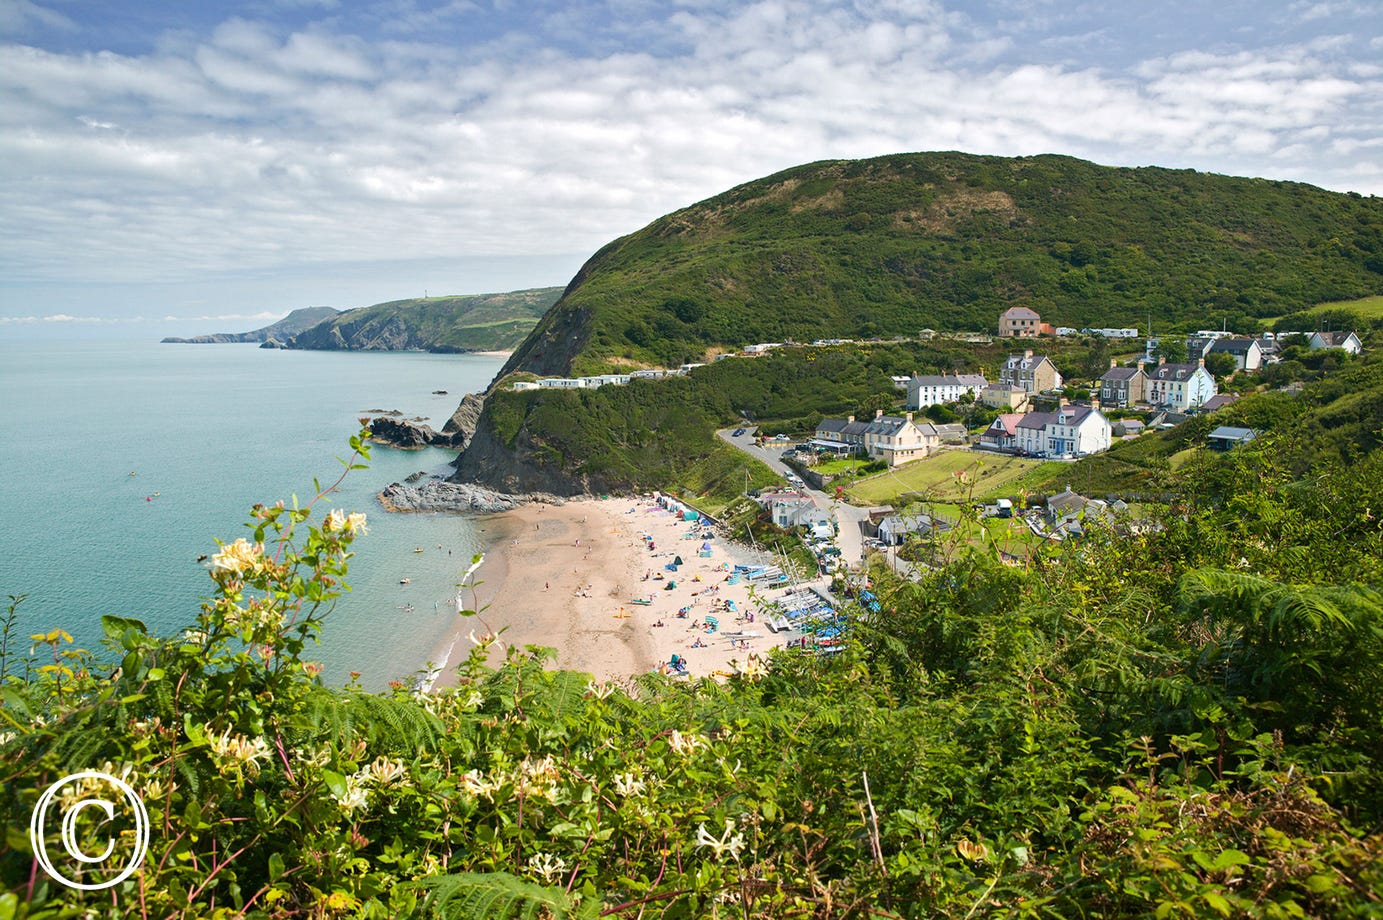 Beach at Tresaith